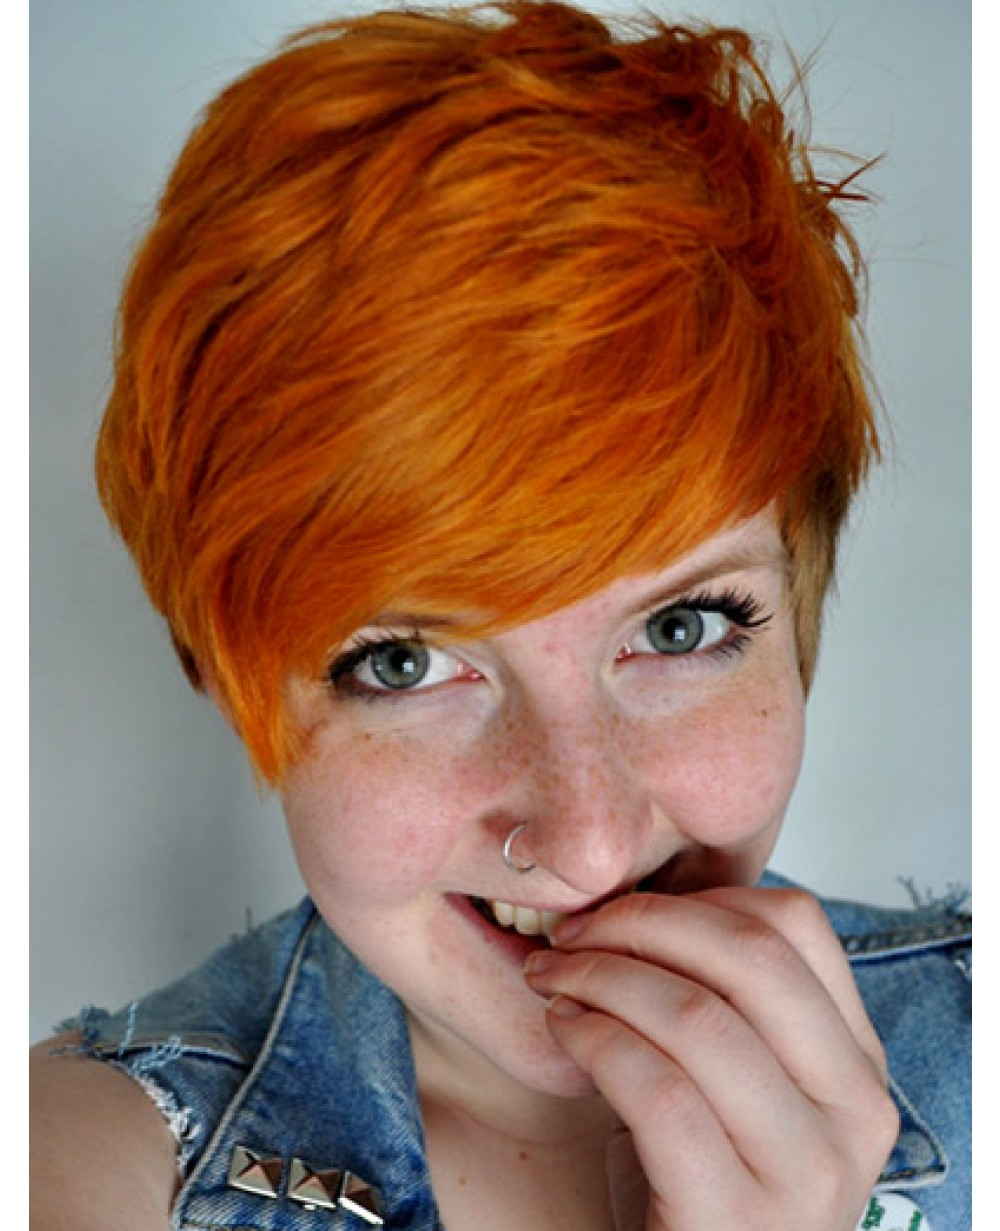 Making the leap from red to orangehelp forums haircrazy of - Tiger lily hair salon ...